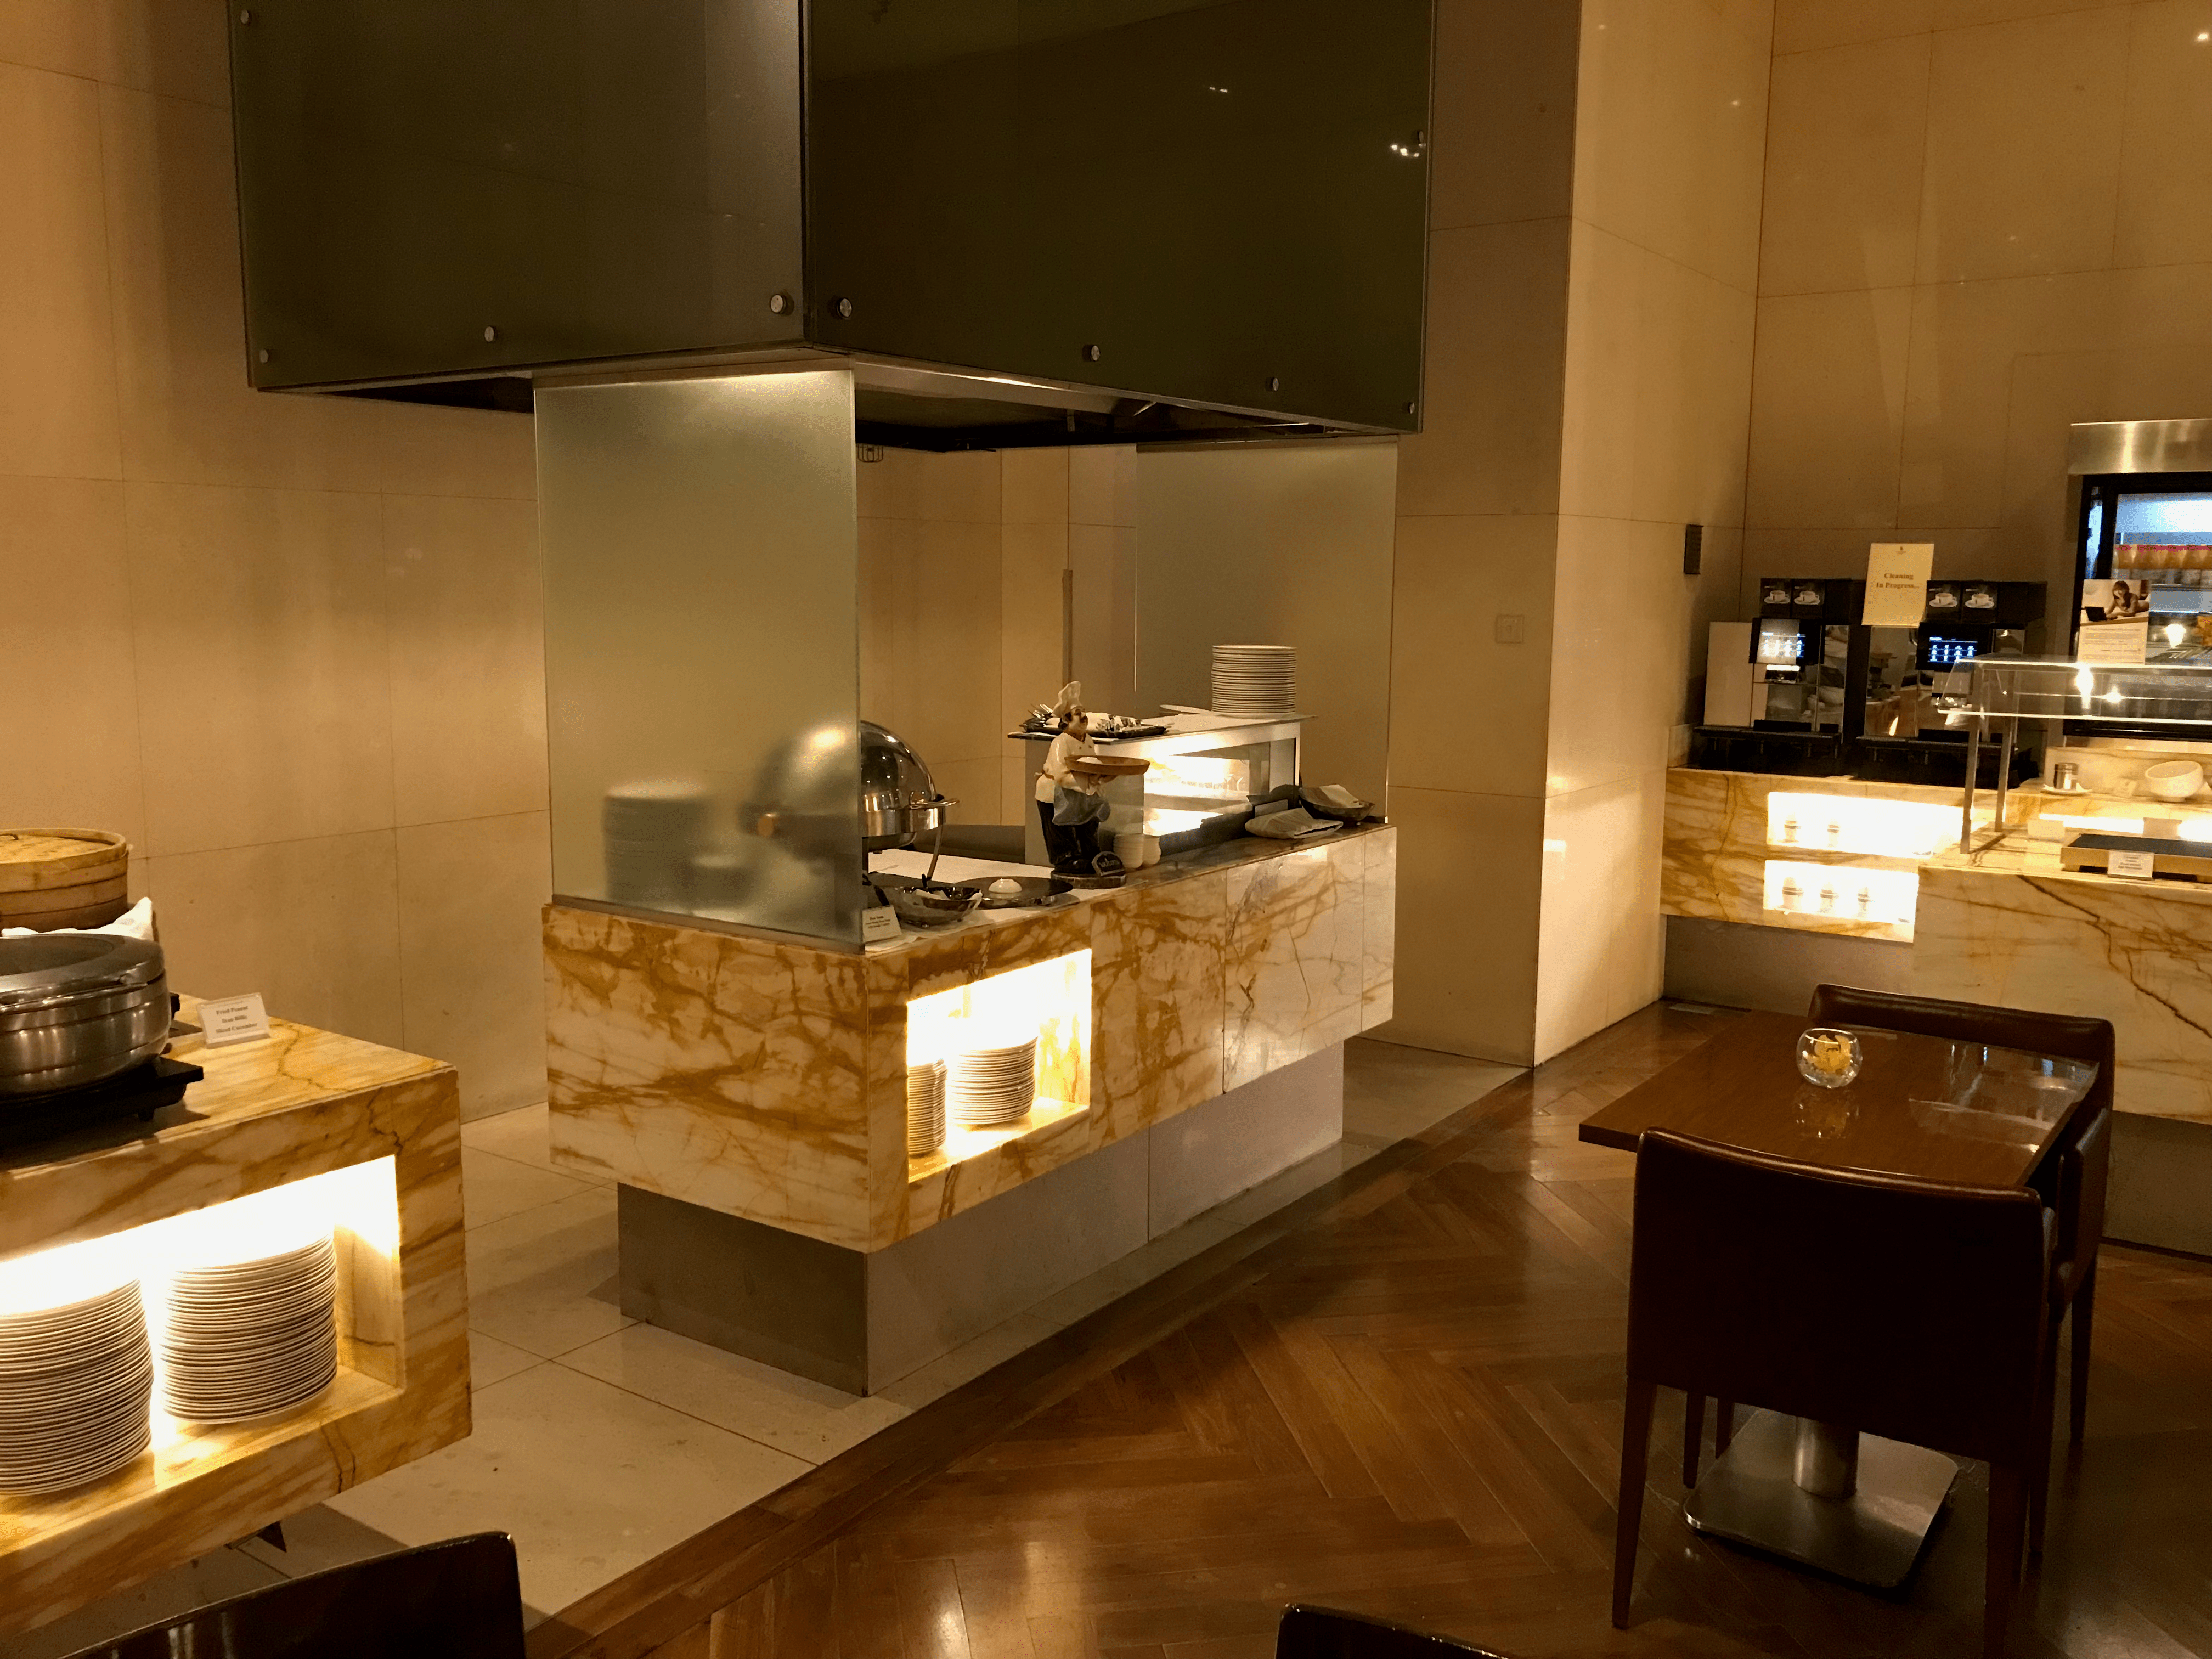 Singapore Airlines First Class lounge hot food